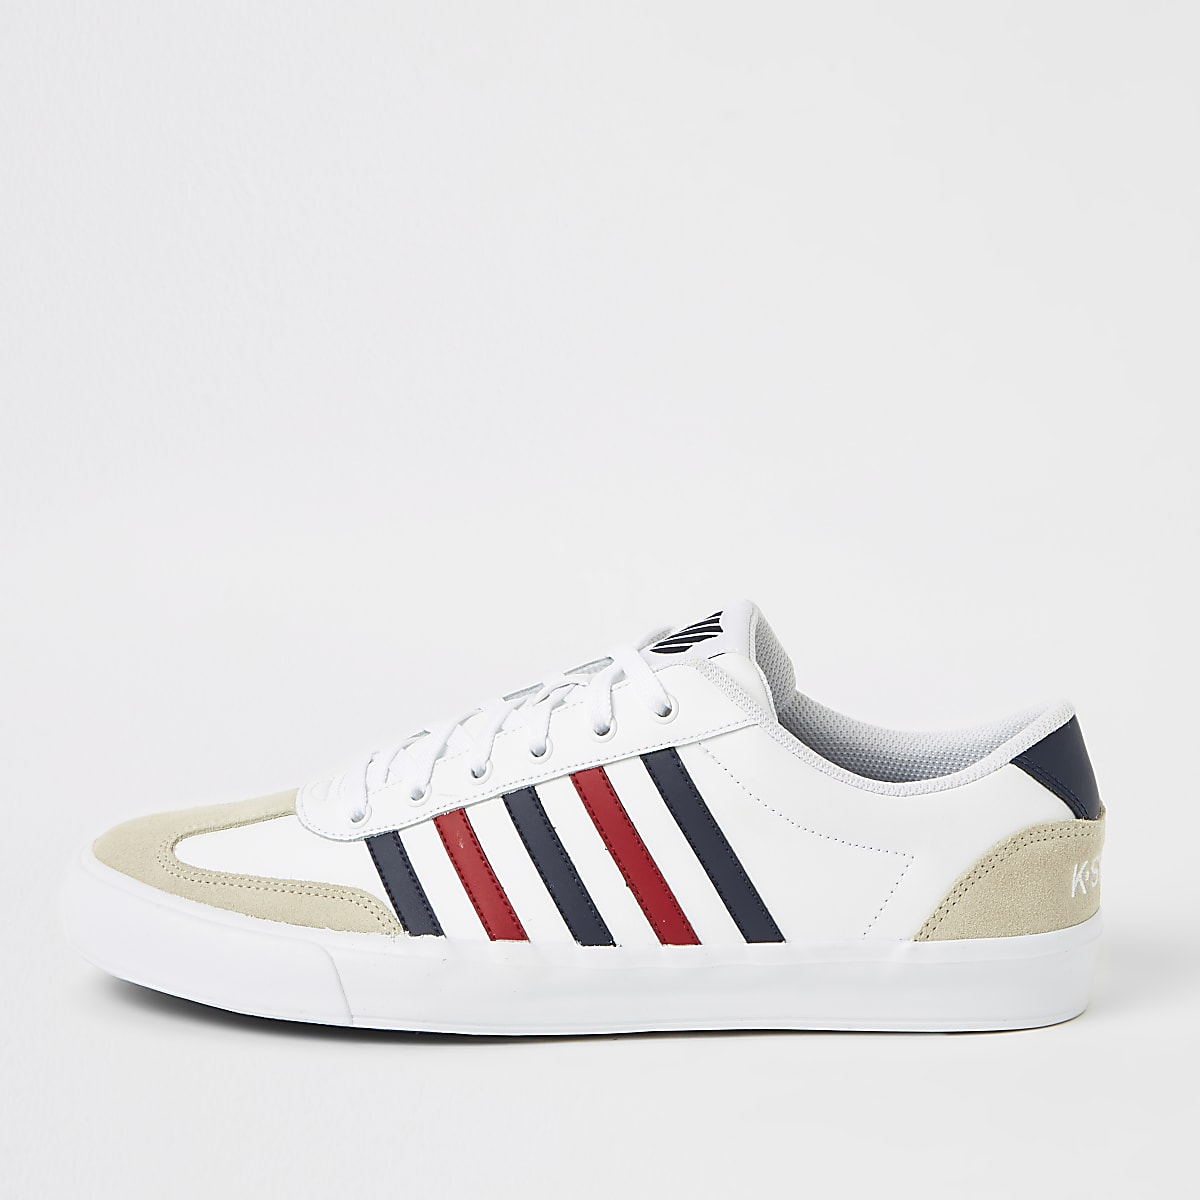 K-Swiss white leather stripe Addison sneakers